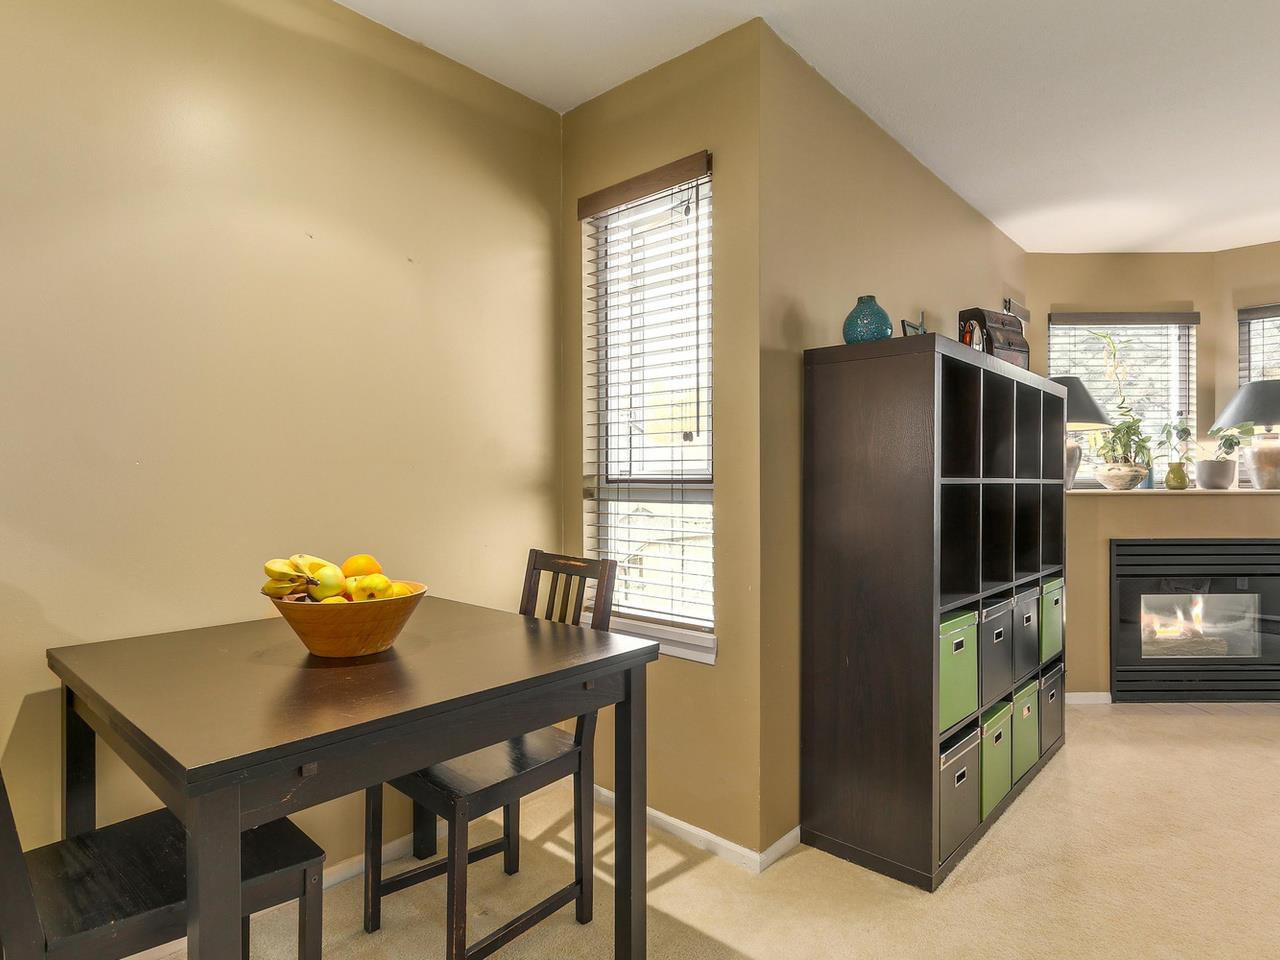 """Photo 9: Photos: 301 1623 E 2ND Avenue in Vancouver: Grandview VE Condo for sale in """"GRANDVIEW MANOR"""" (Vancouver East)  : MLS®# R2122830"""